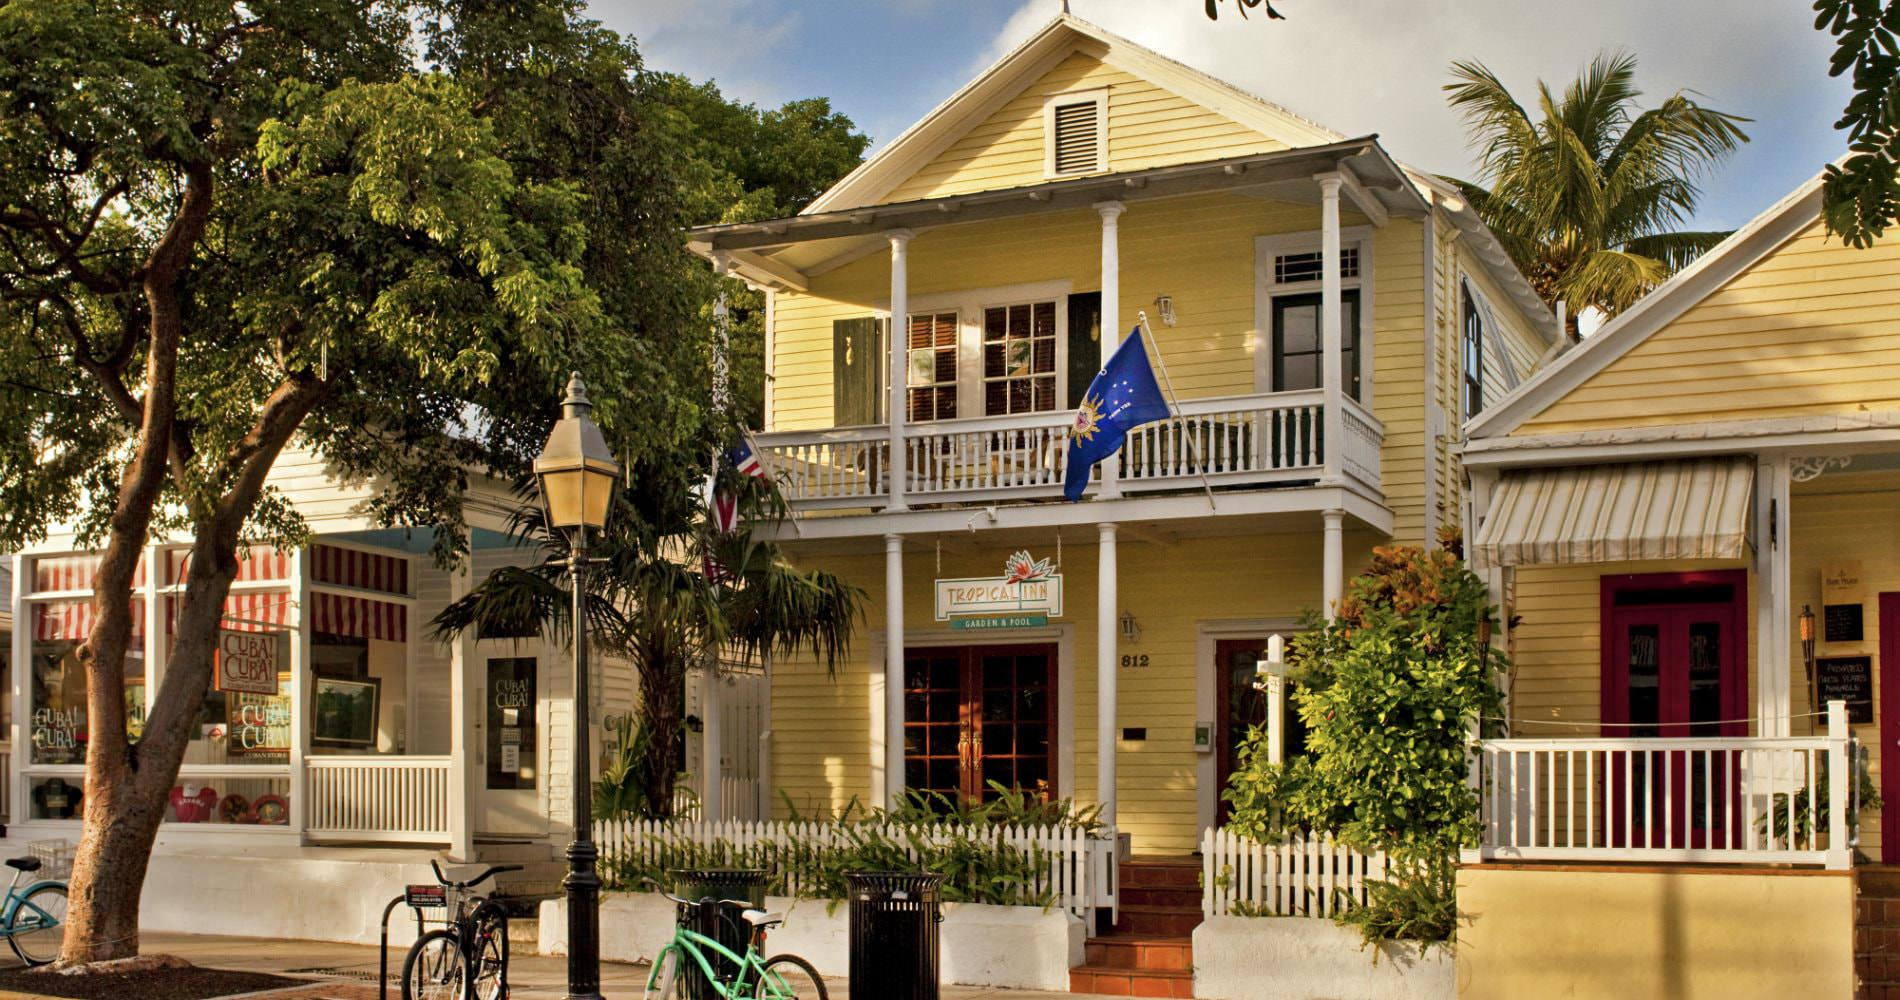 Bright yellow buildings with blue flag flying and green shutters and white picket railings